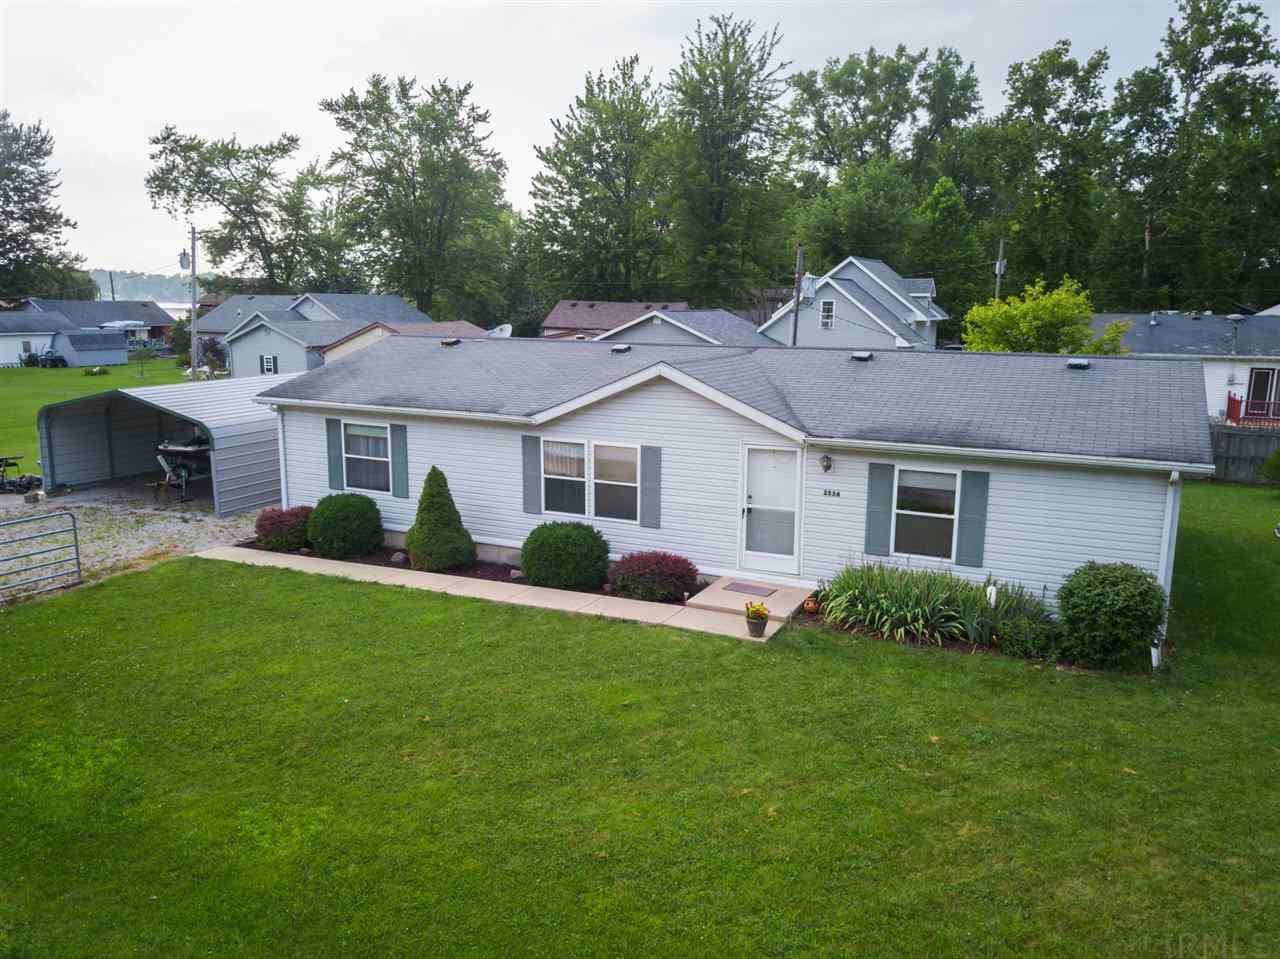 3534 W Lakeway Dr-57, Columbia City, IN 46725